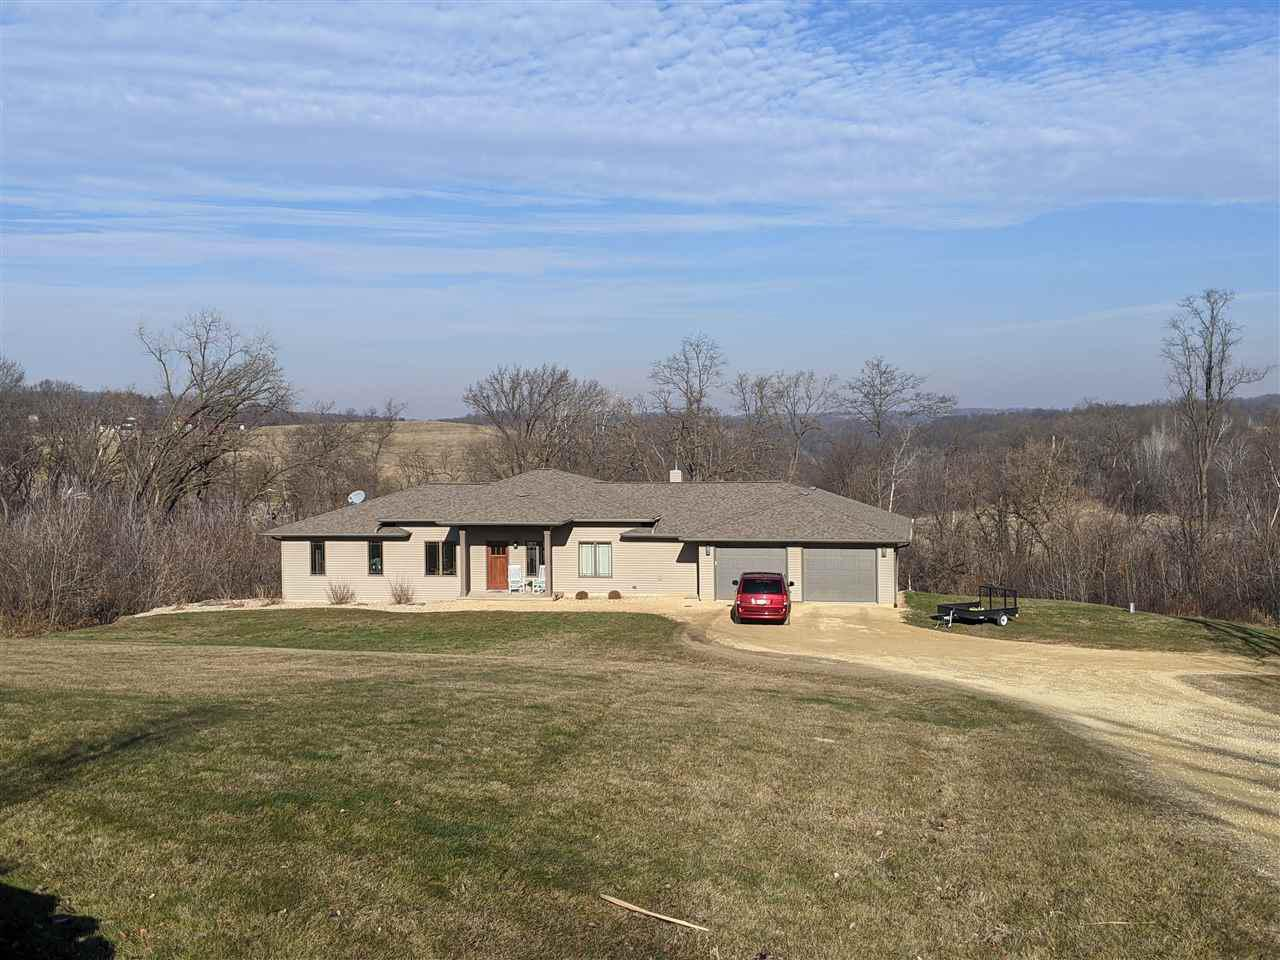 What a A Country Dream! Work from home in your own paradise! A must see custom home on 20 acres has it all. Open concept w/10 ft ceilings and floor-to-ceiling windows that provide natural light and views for days. The kitchen offers an oversized island, stainless appliances & walk-in pantry. Formal dining or office space has french doors for privacy. Main bedroom includes walk in closet and bath with dual sinks.Hardwood floors and antique farmhouse solid wood doors add special character to this home. Walk-out basement offers finished family room, a 3rd bed, full bathb & work-out area.  Outside: lrg heated garage w/running water,  raised garden beds, fire pit, trails thru the acreage AND 3 tree stands! 7 acres tillable that can be rented.